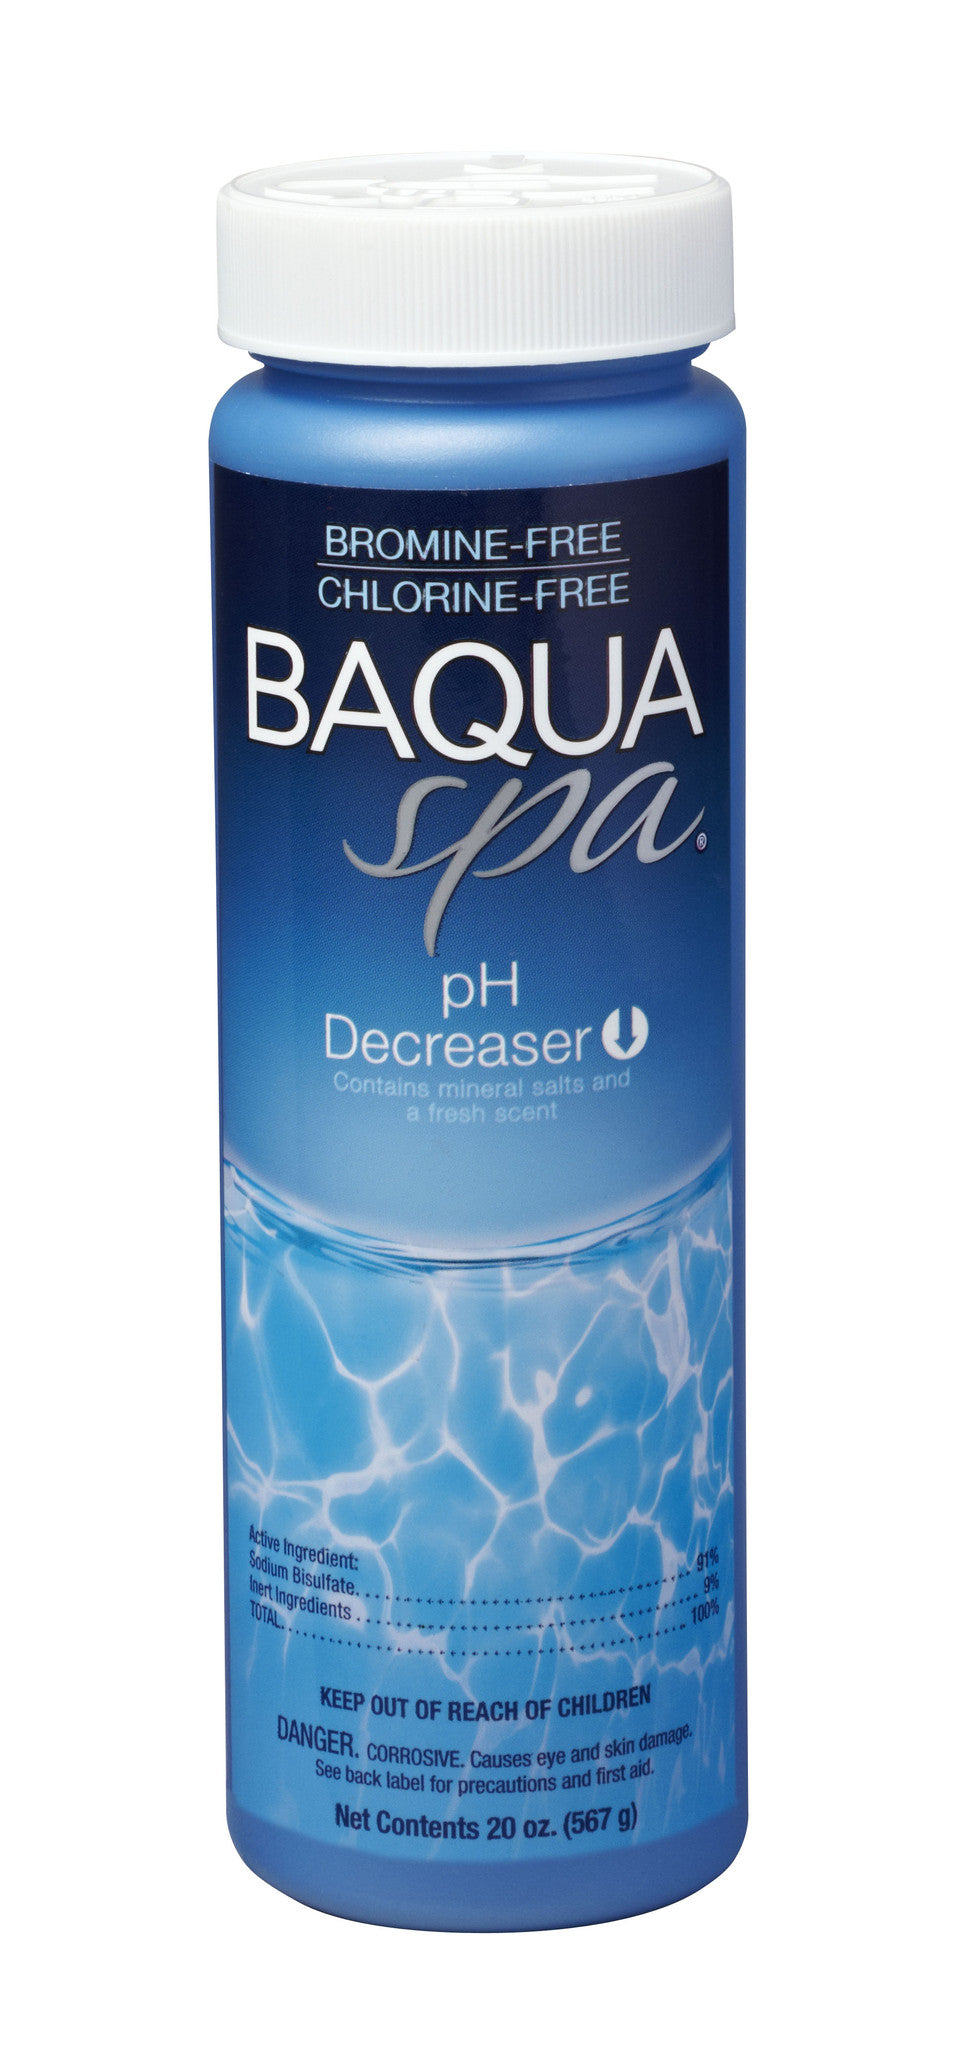 Baqua Spa pH Decreaser